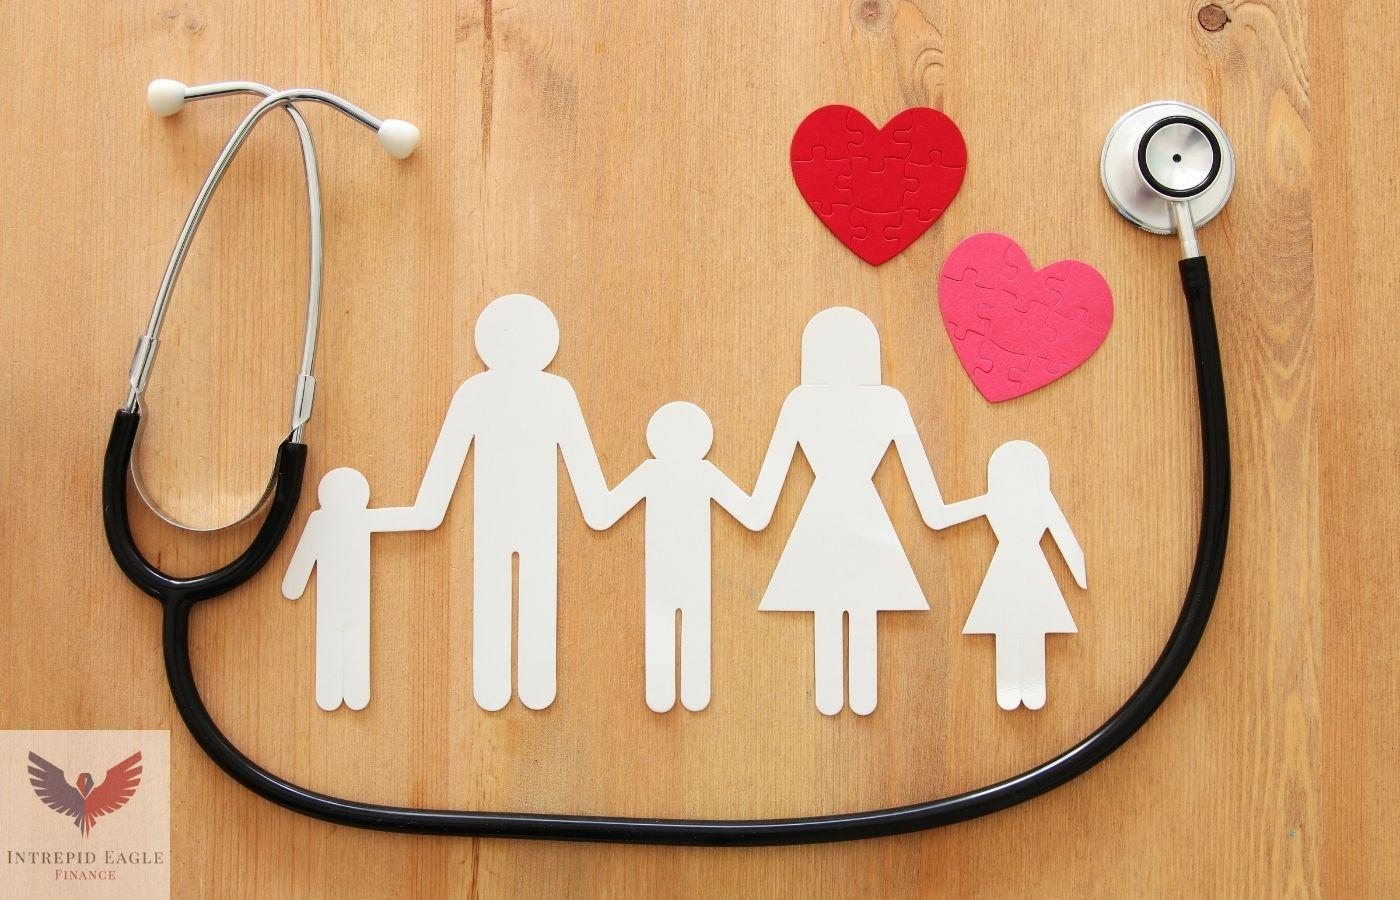 No Health Insurance? Here Are 9 Other Ways to Cover Your Medical Expenses in 2021 Thumbnail